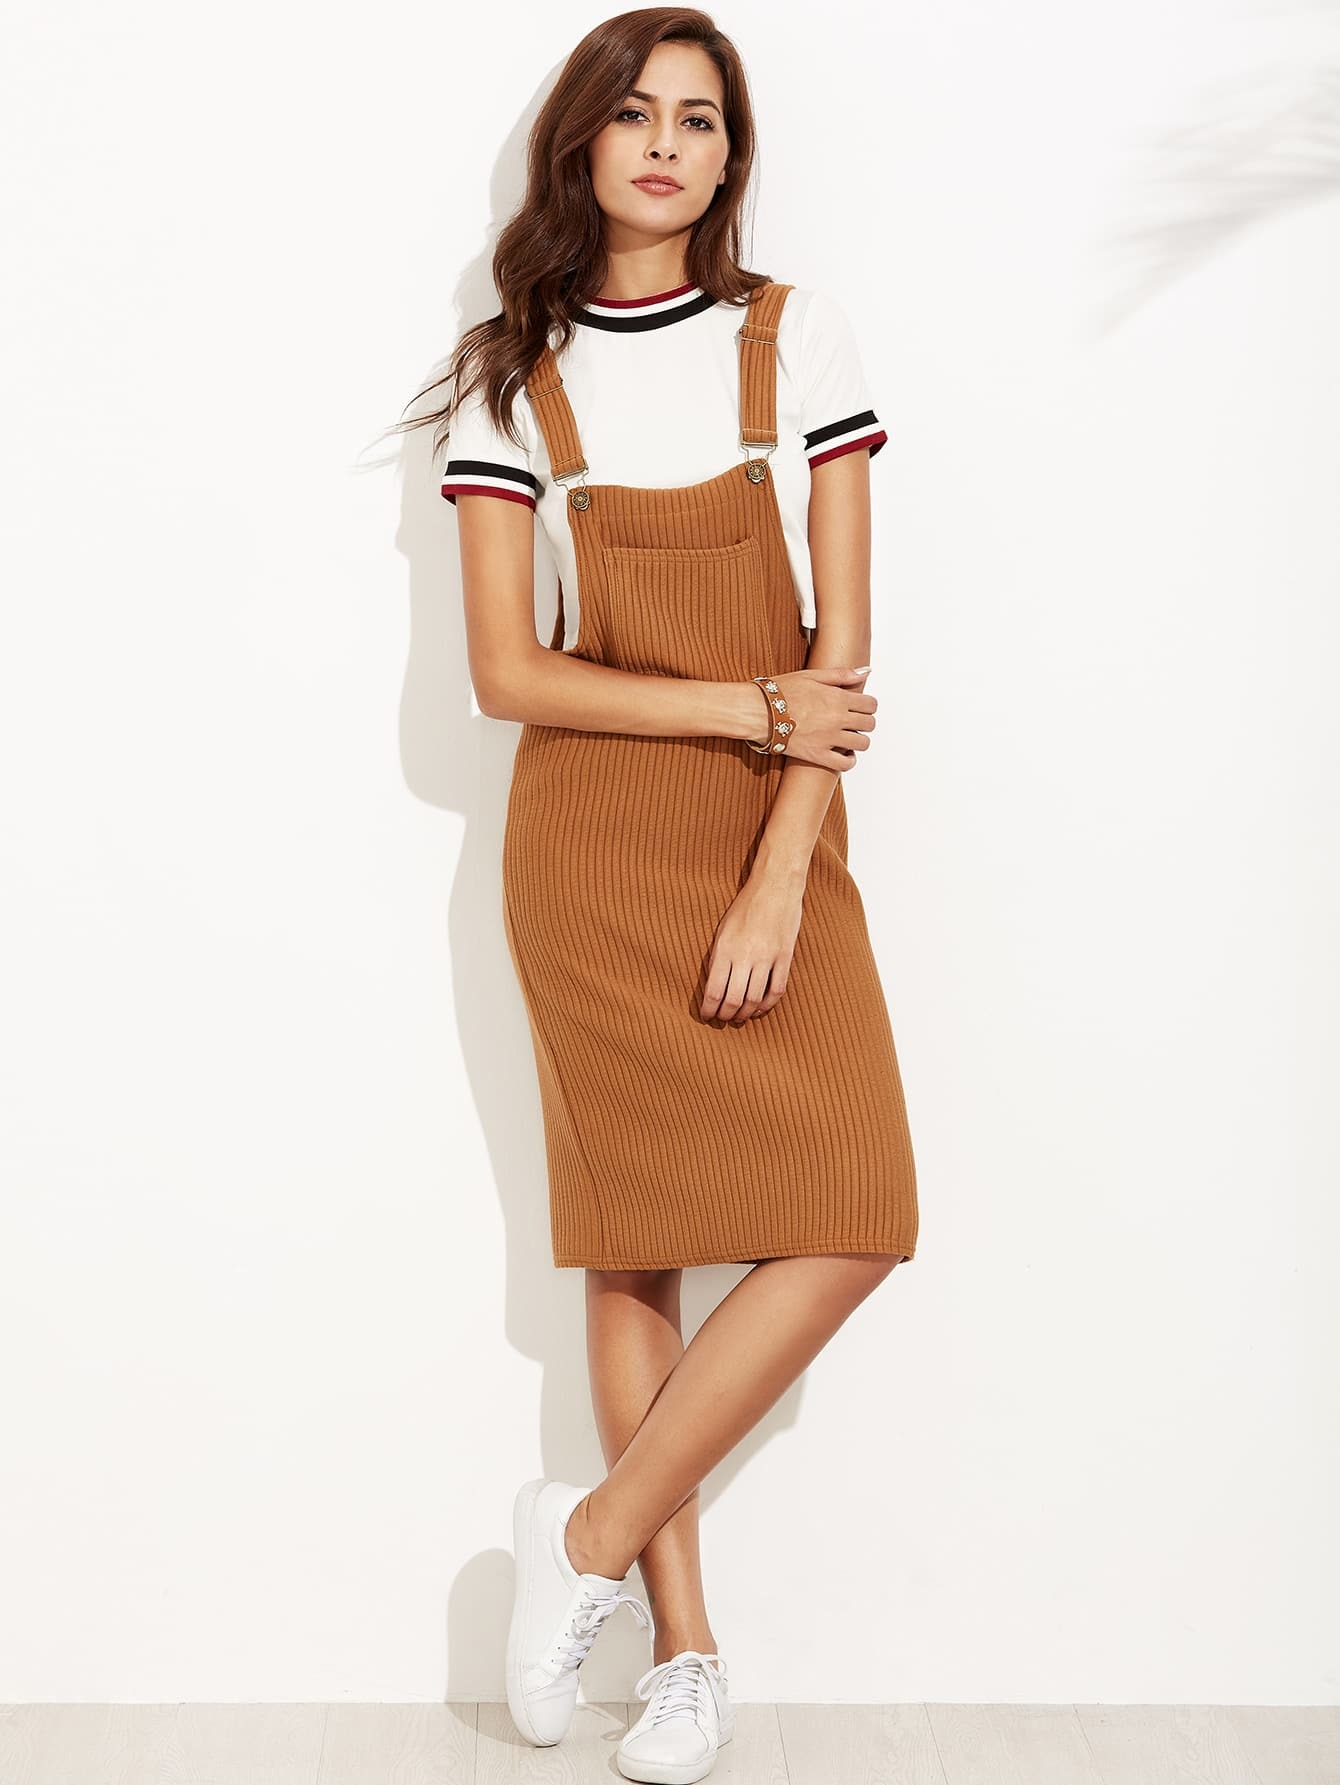 Khaki Ribbed Overall Dress With Pockets dress160817122